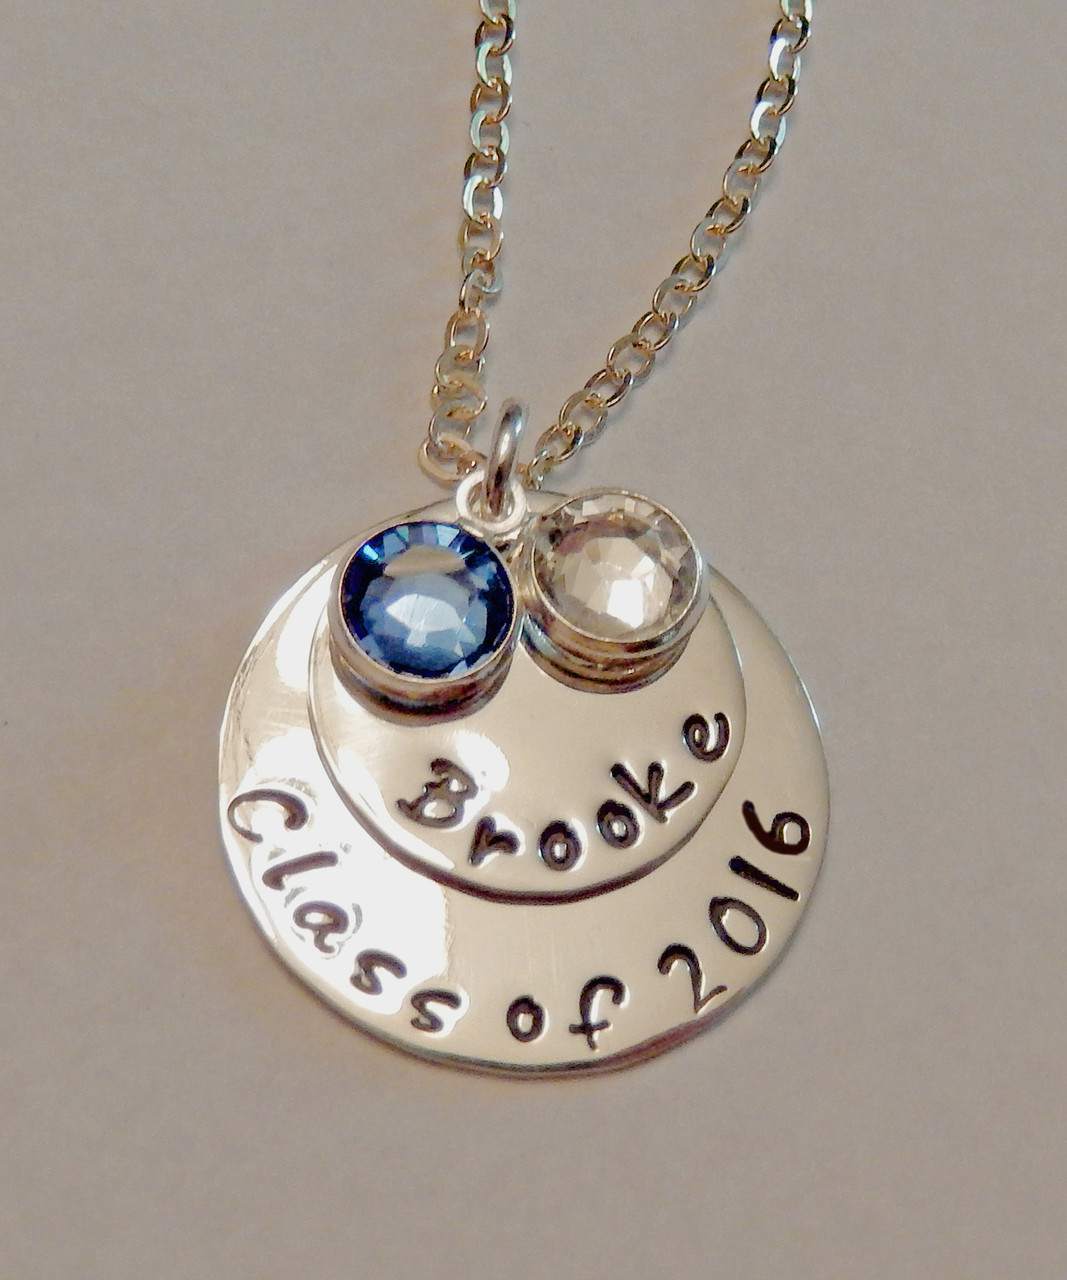 8525c8ea1d576 Class of 2018 Graduation Necklace Personalized with Name